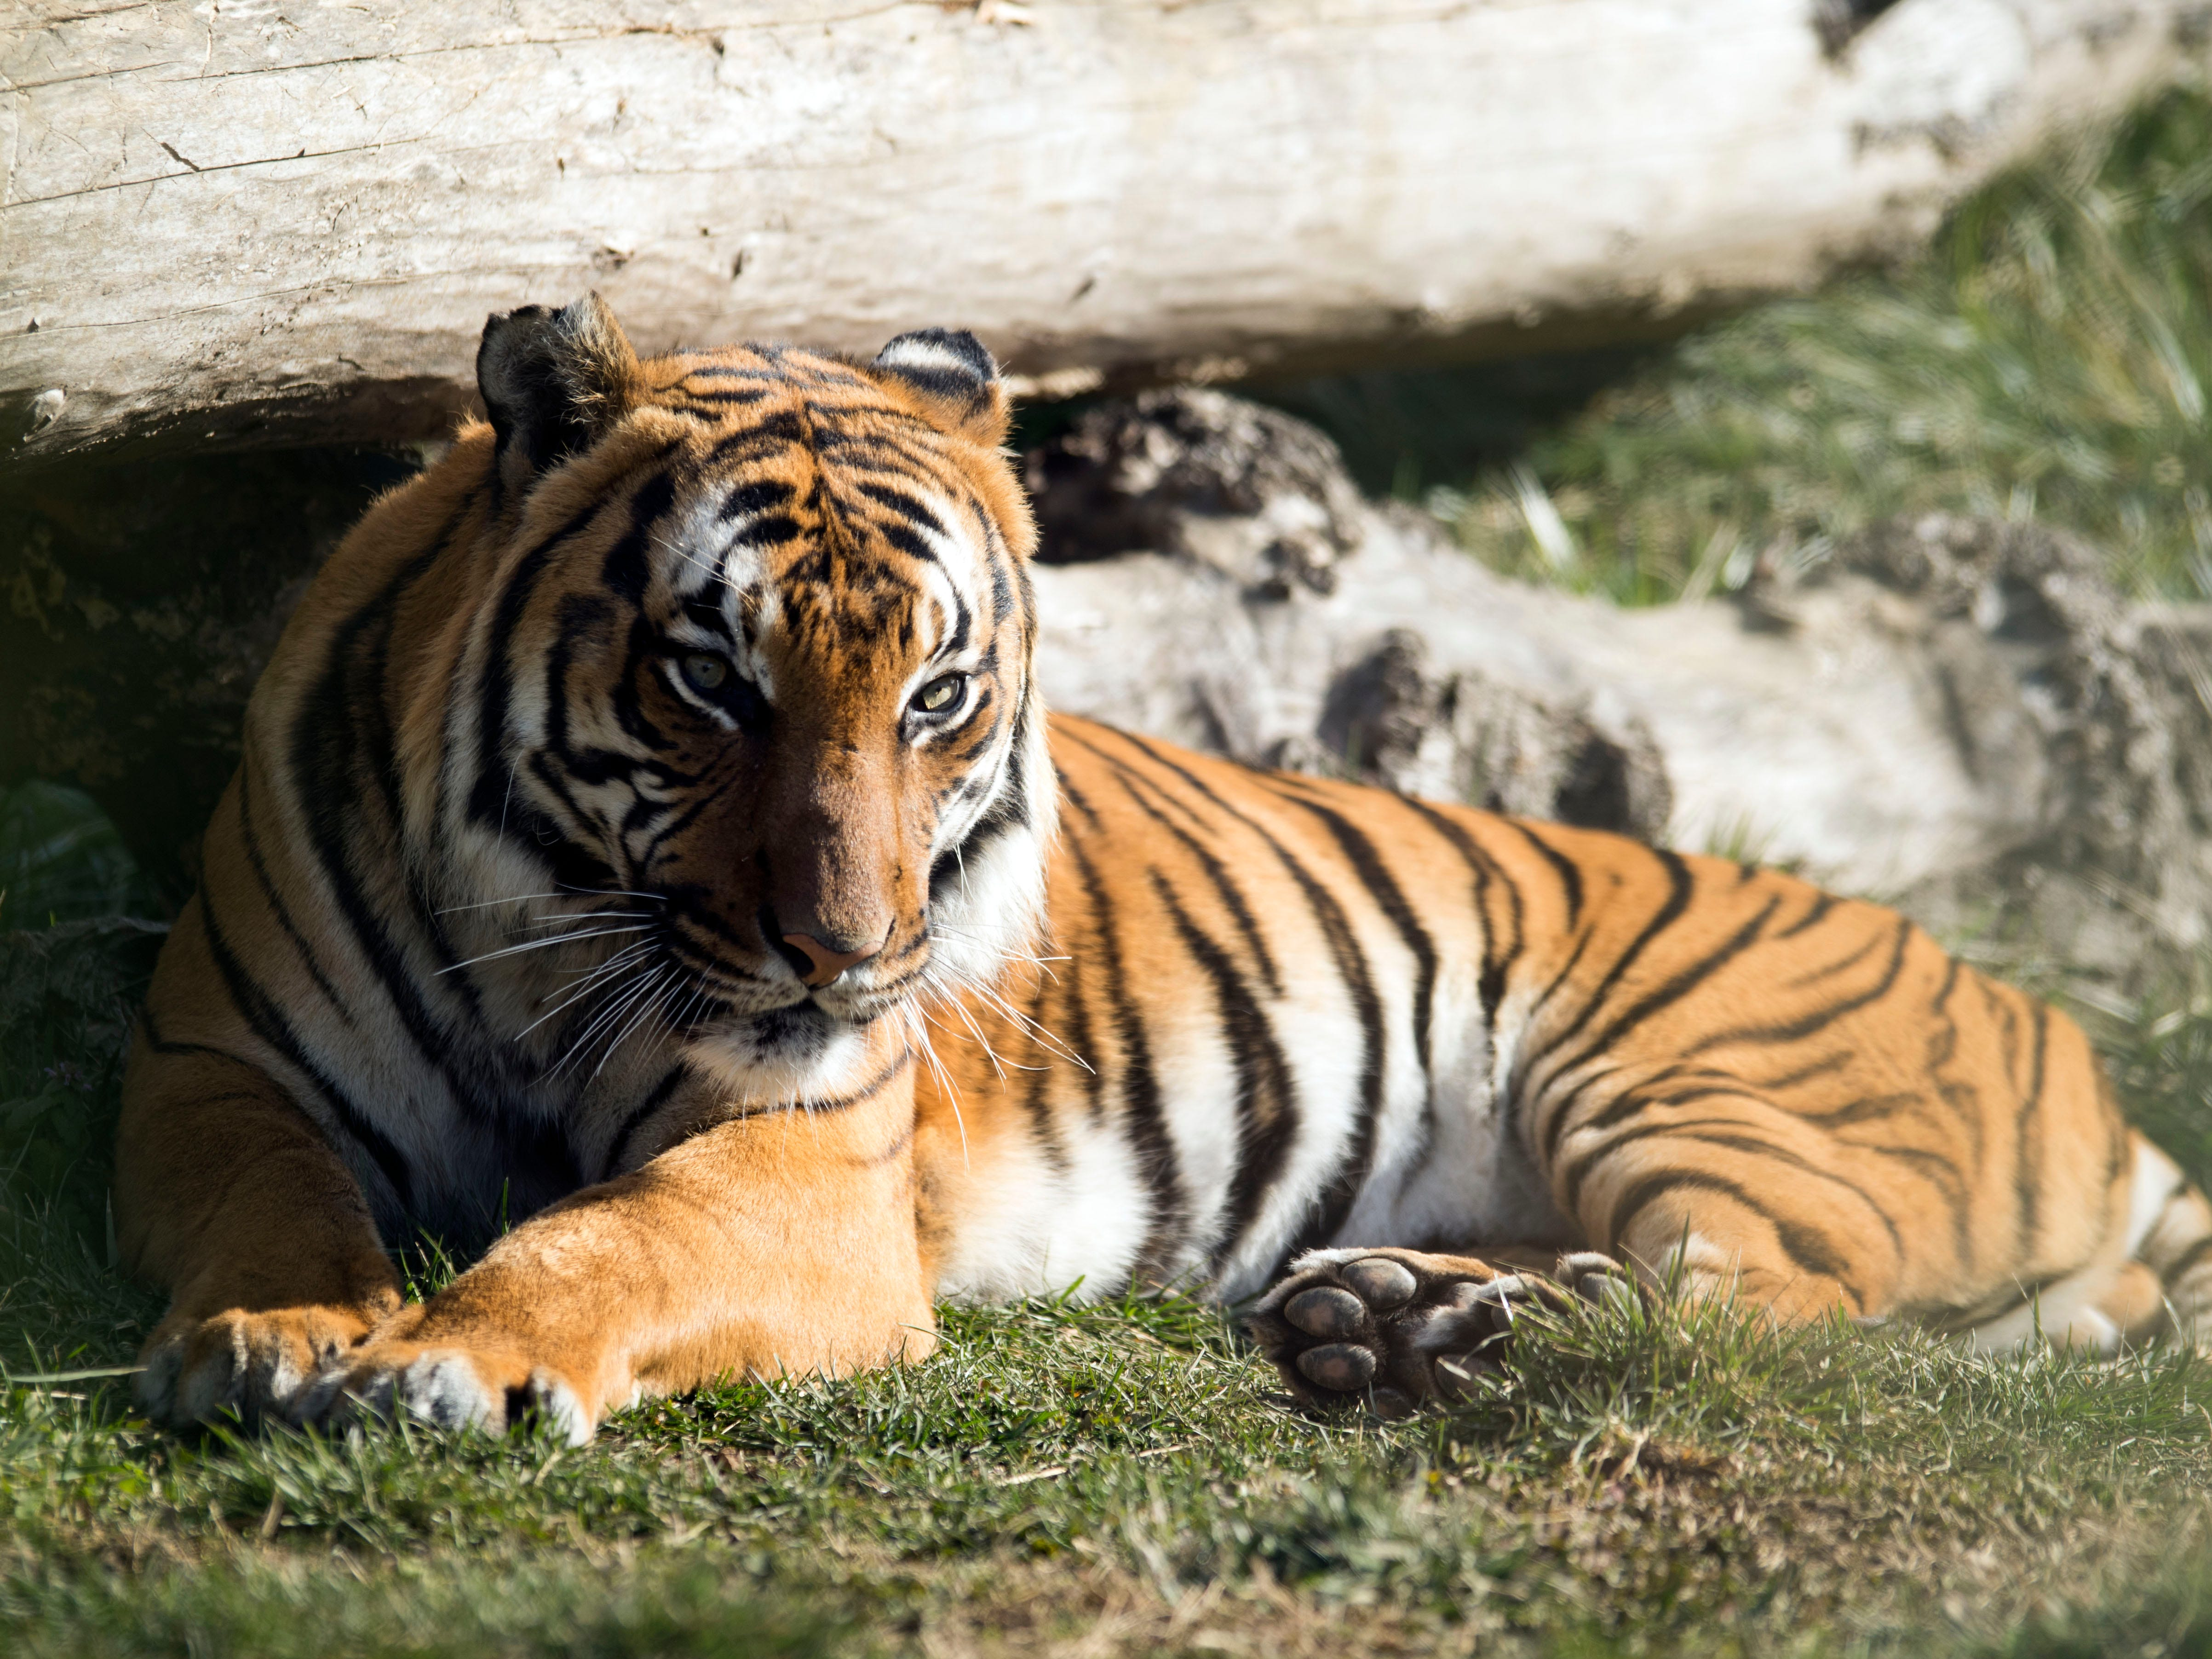 Bashir, a Malayan Tiger, sits in the sun at Zoo Knoxville's Tiger Forest habitat on Sunday, February 3, 2019.